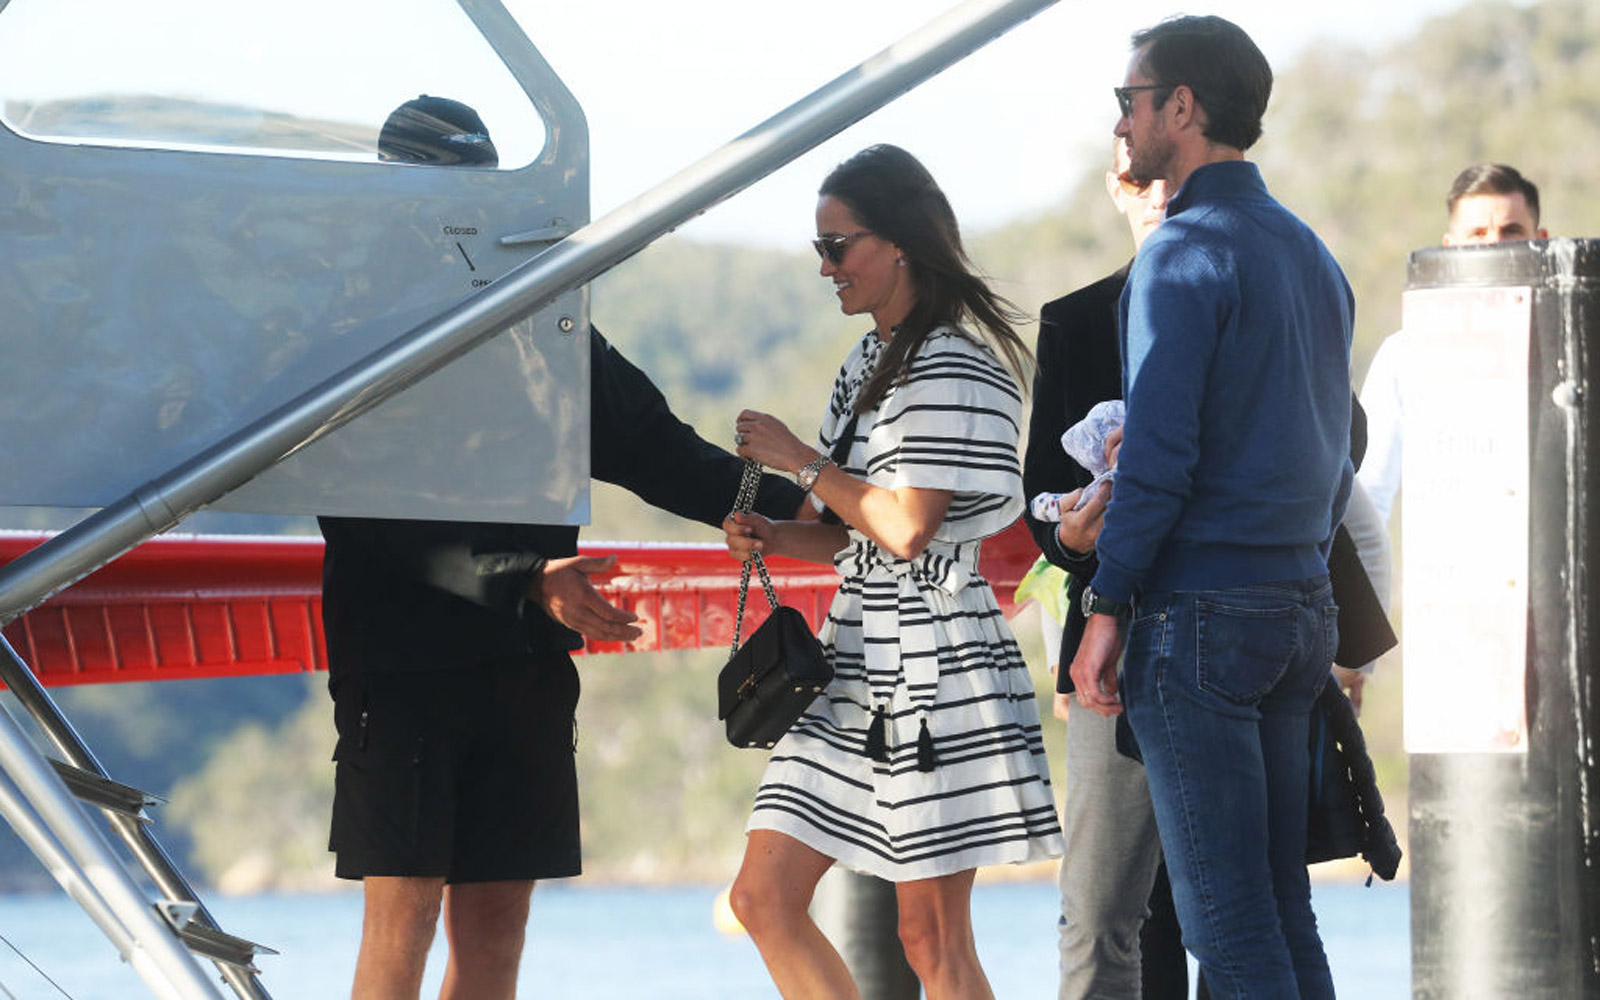 MAY 31, 2017: SYDNEY, NSW - (EUROPE AND AUSTRALASIA OUT) Newly married Pippa Middleton boards a seaplane after enjoying lunch with husband James Matthews at the Cottage Point Inn in Sydney, New South Wales. (Photo by Rohan Kelly/Newspix/Getty Images)